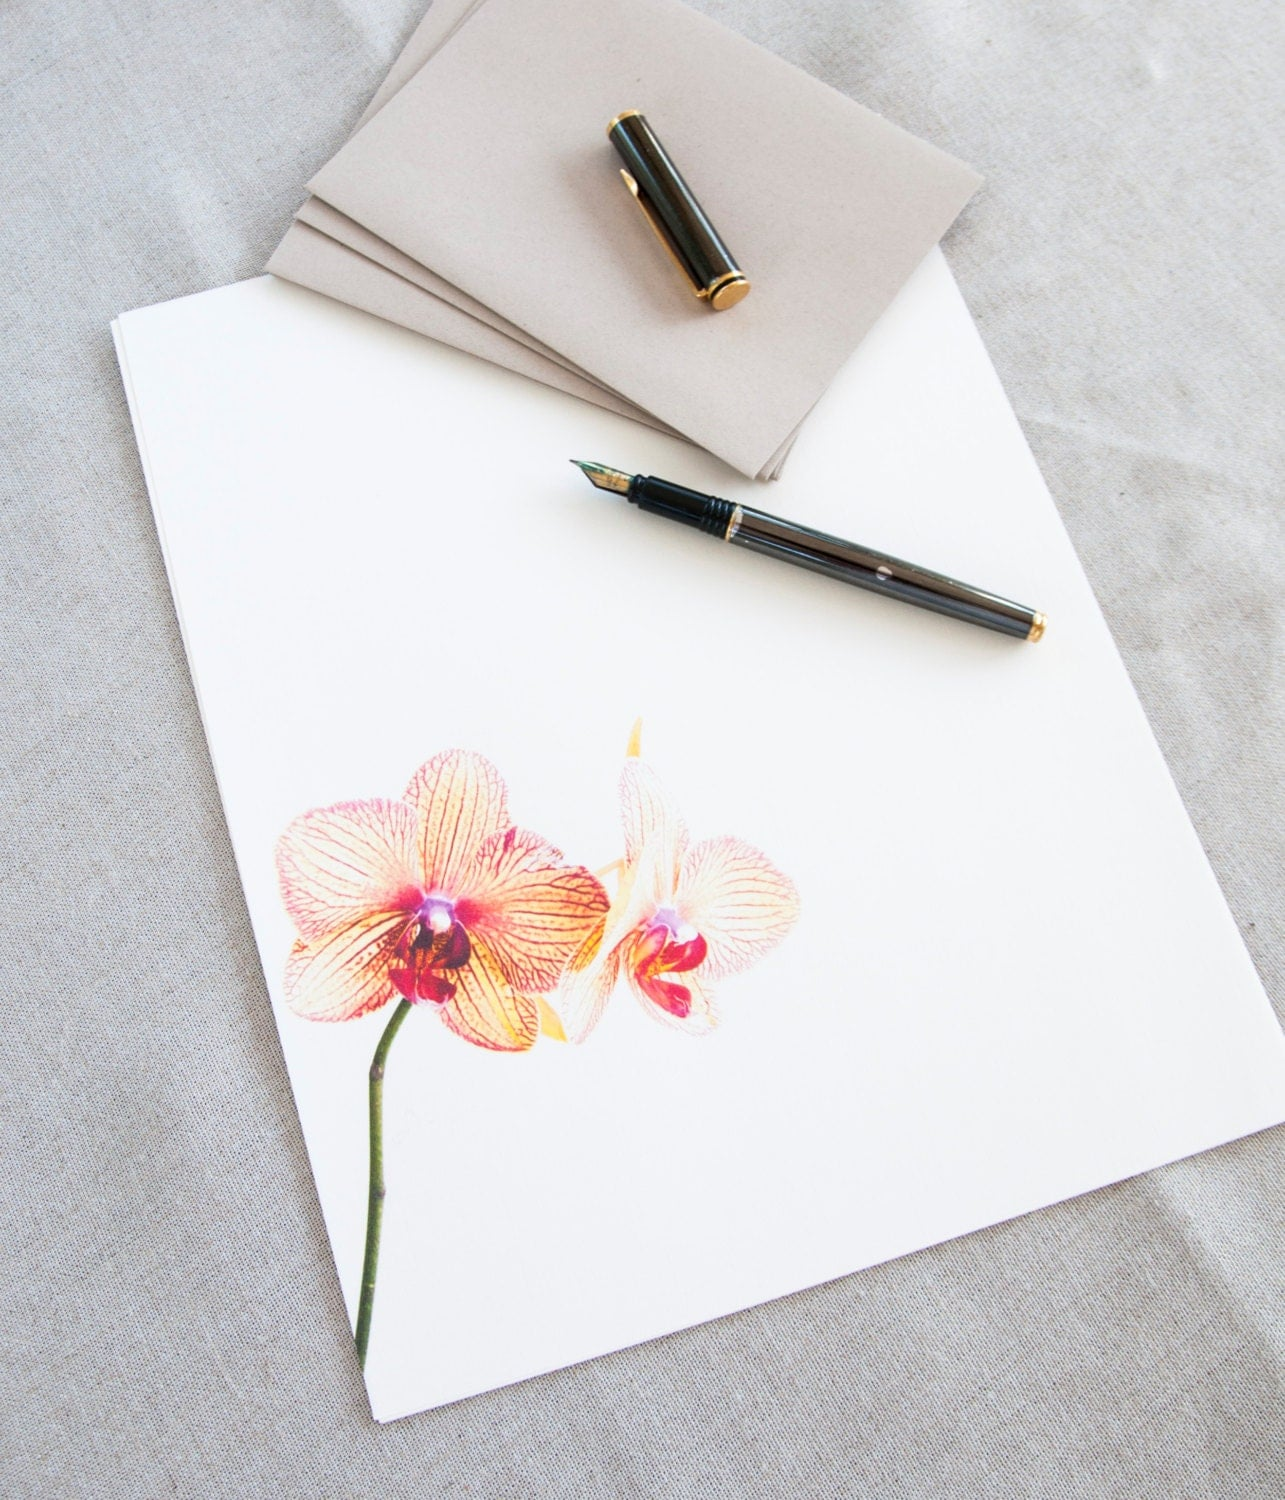 Personalized Stationery Gift Sets - Gift Ftempo